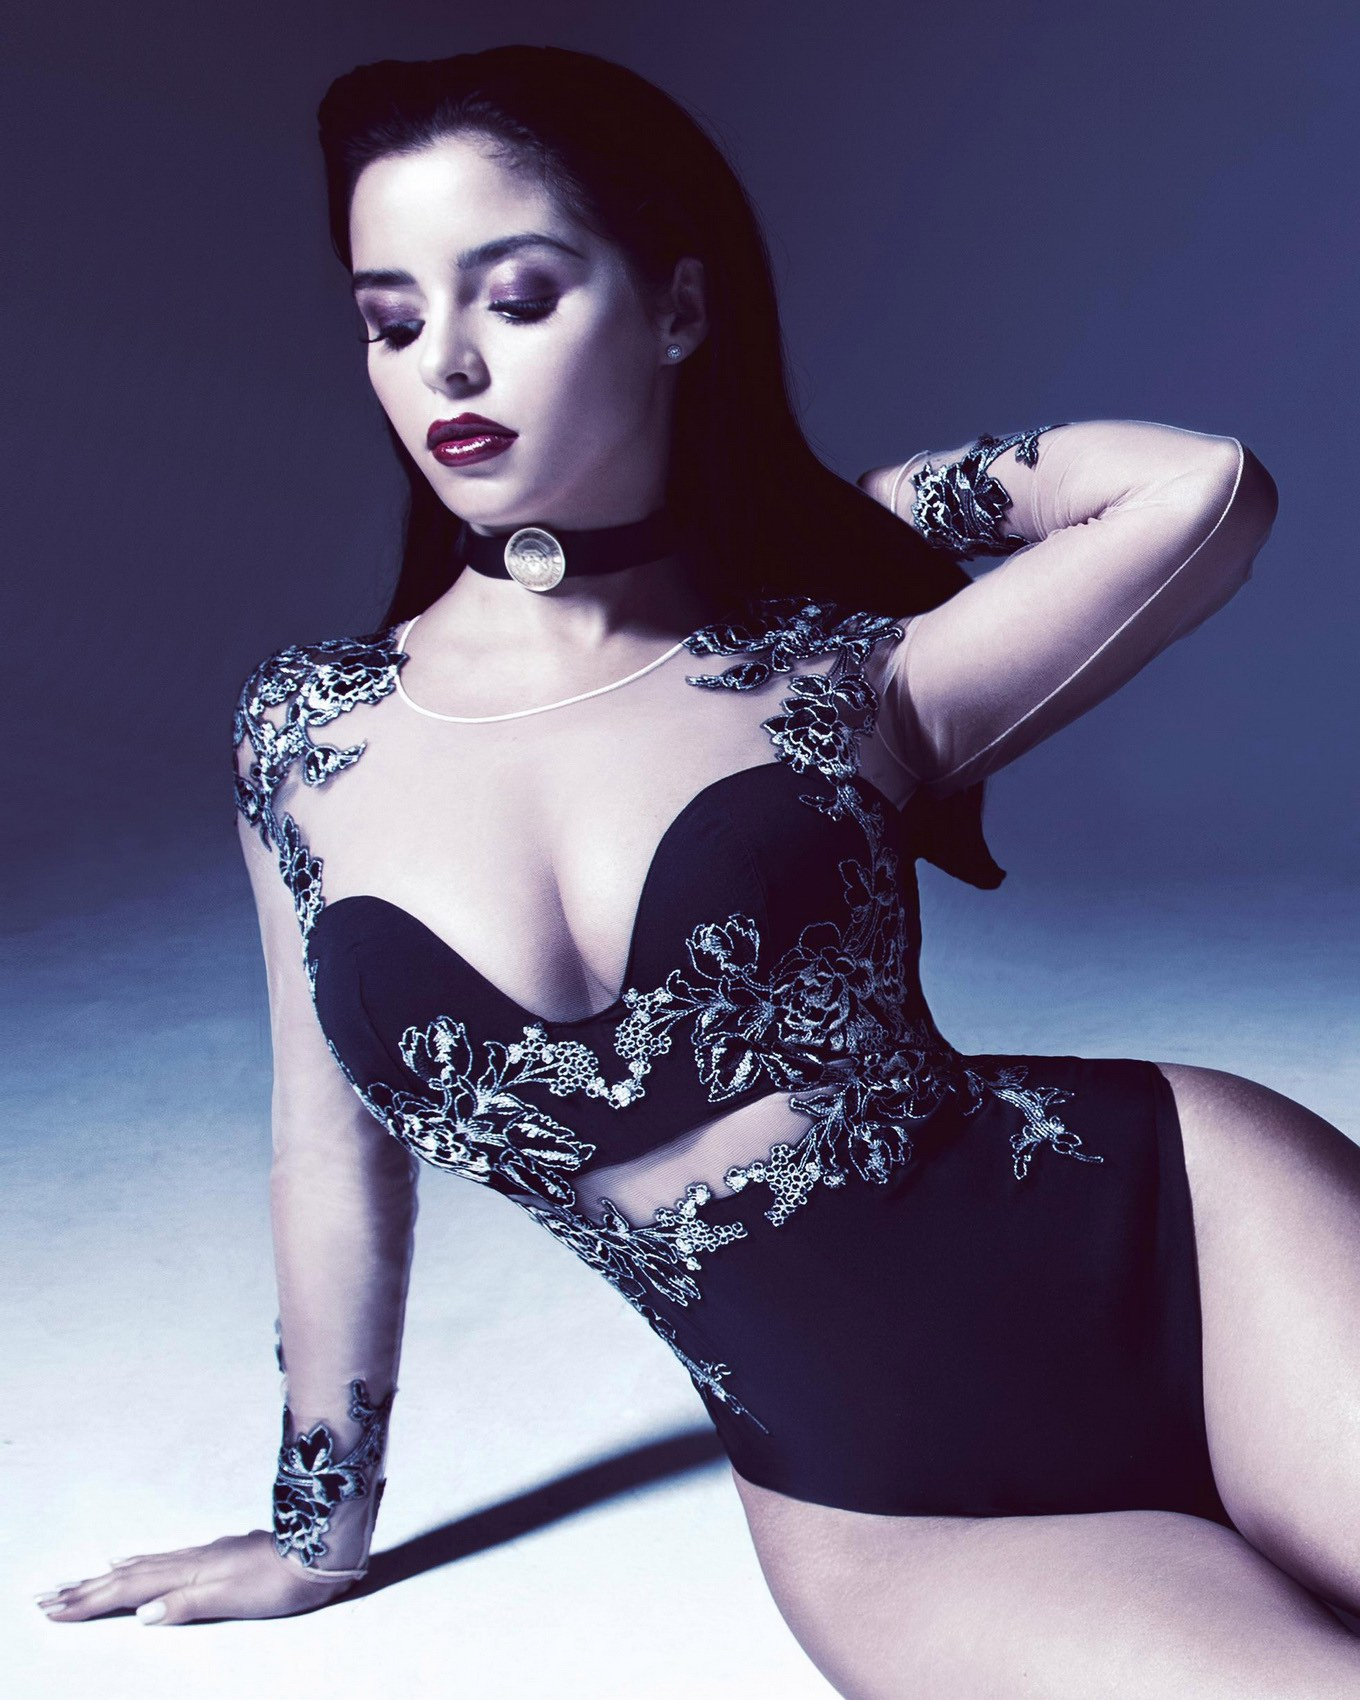 demi rose mawby displaying her hot nude body for the